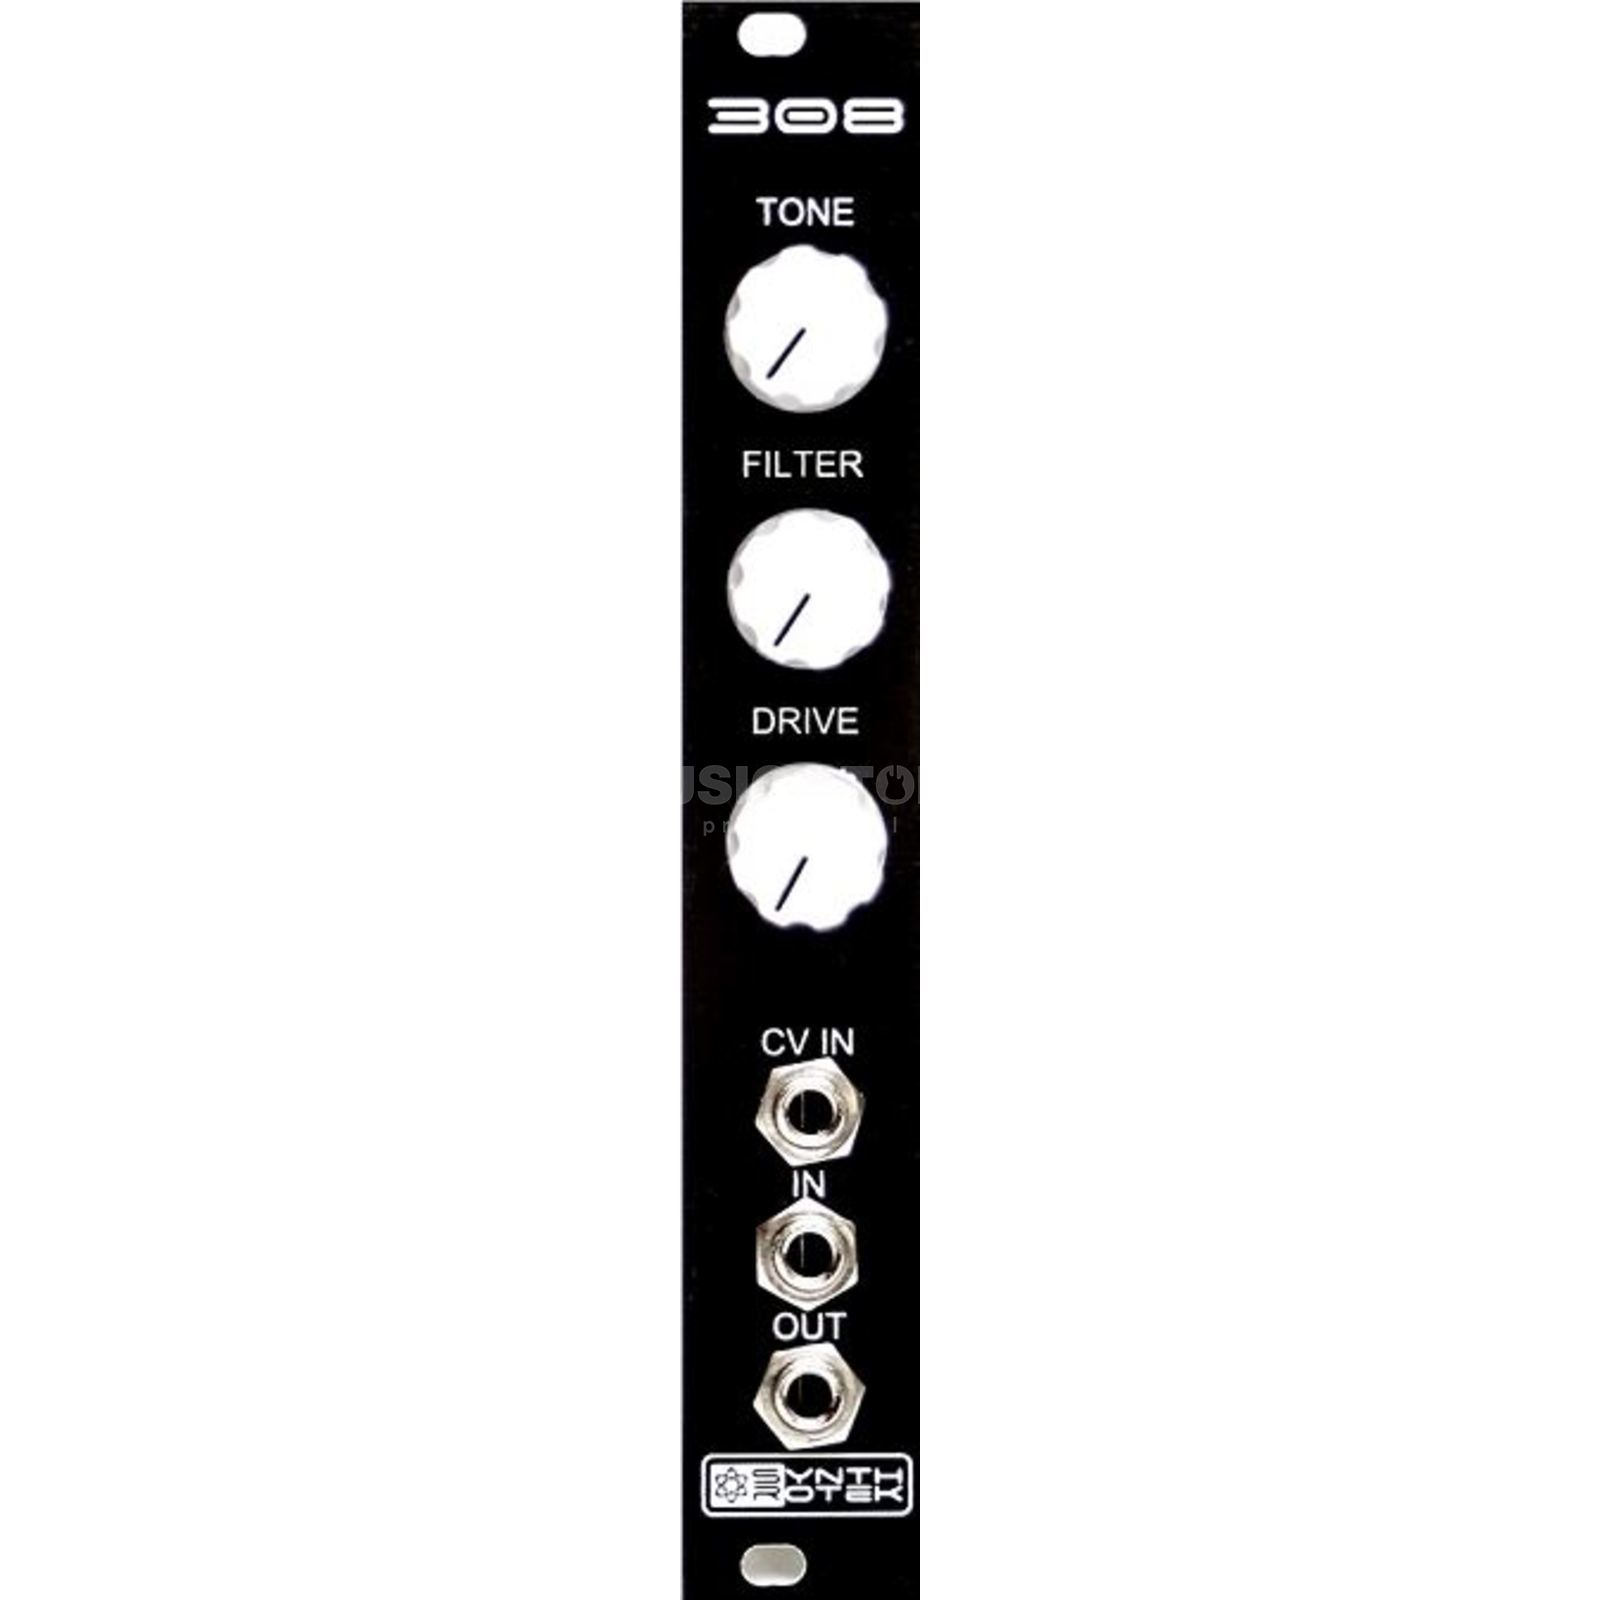 Synthrotek 308 Distortion Produktbillede